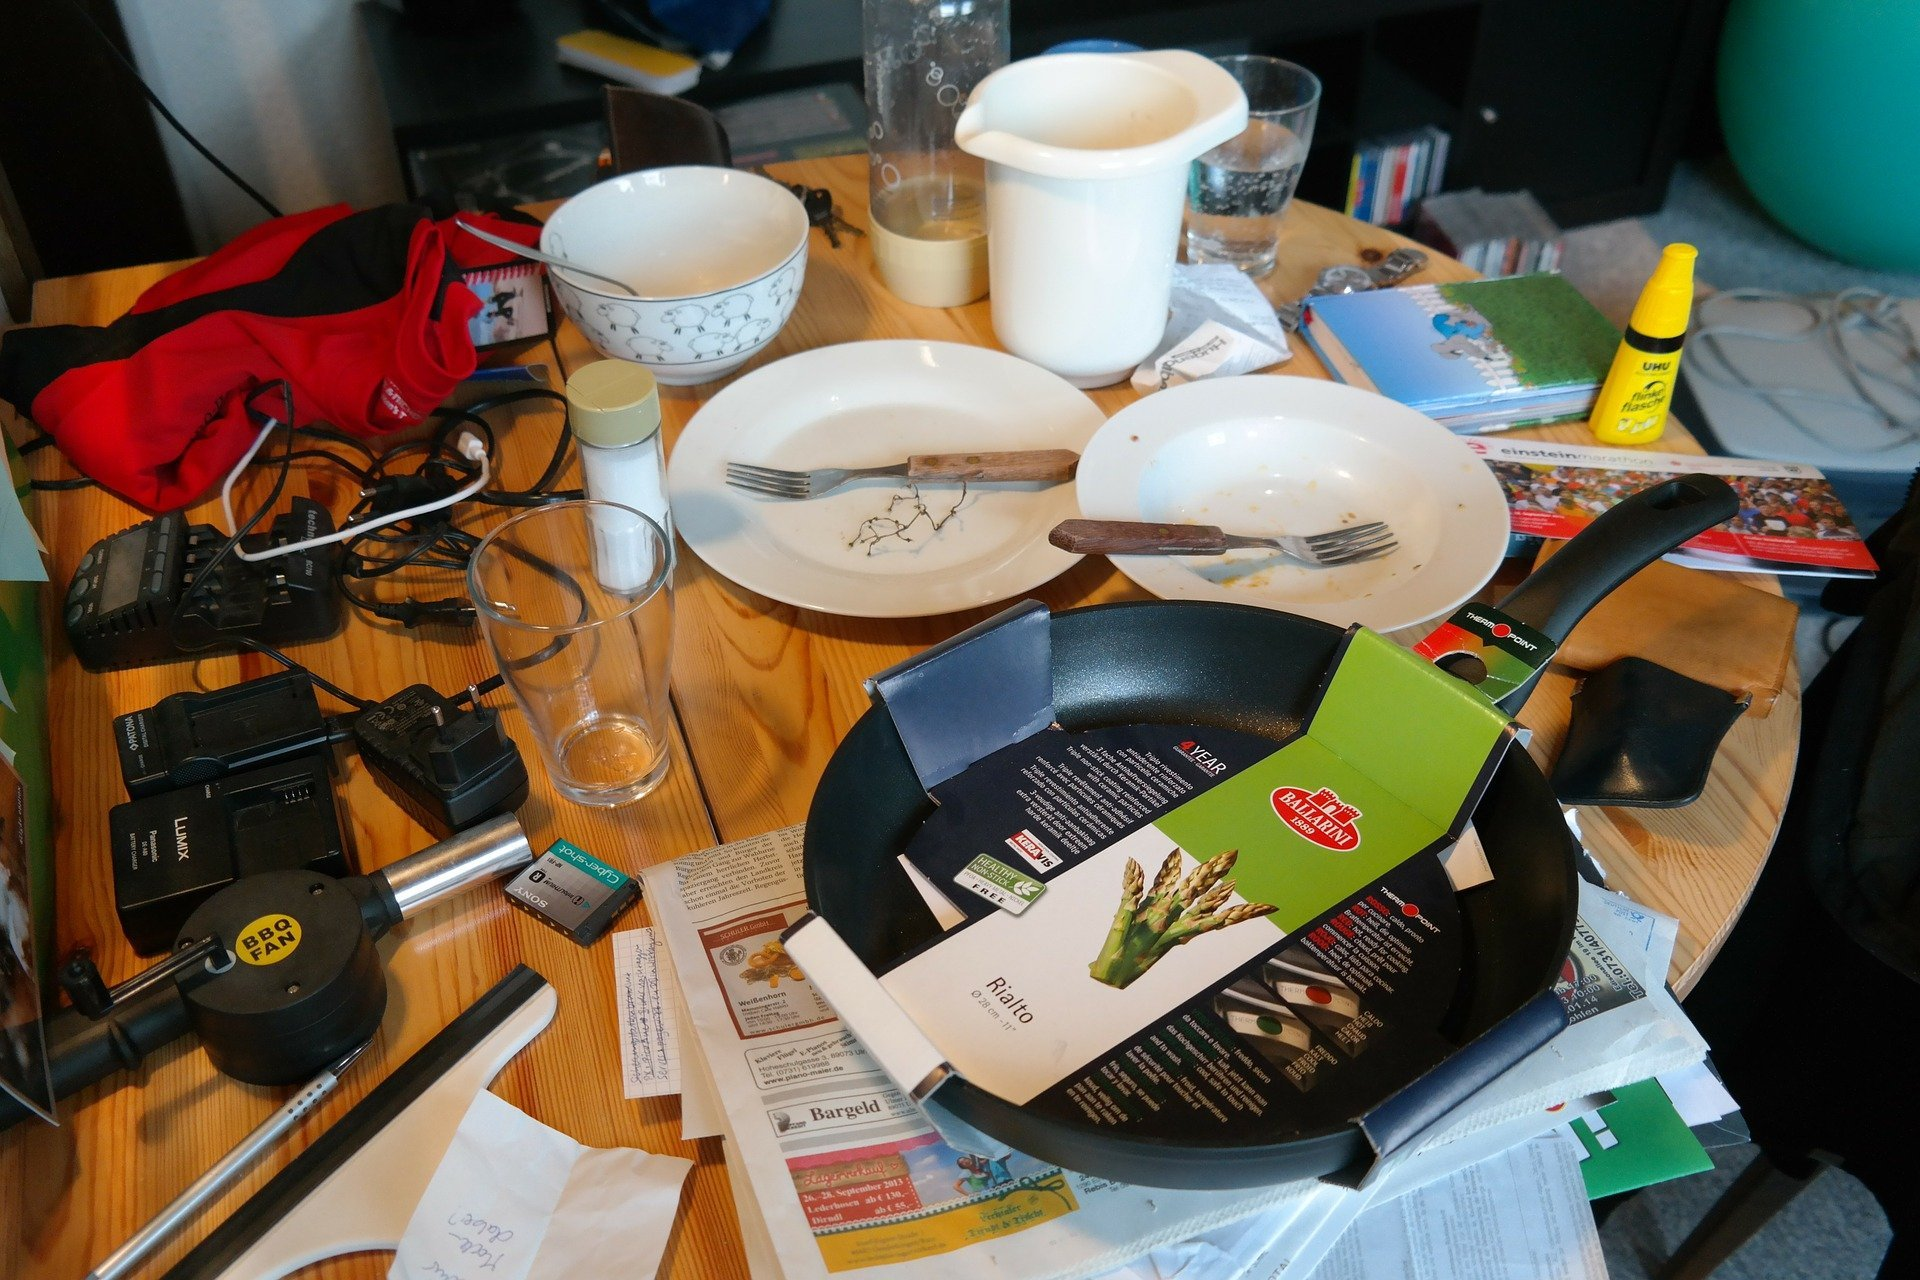 Cluttered mess on the dinner table.   Source: Hans Braxmeier/Pixabay